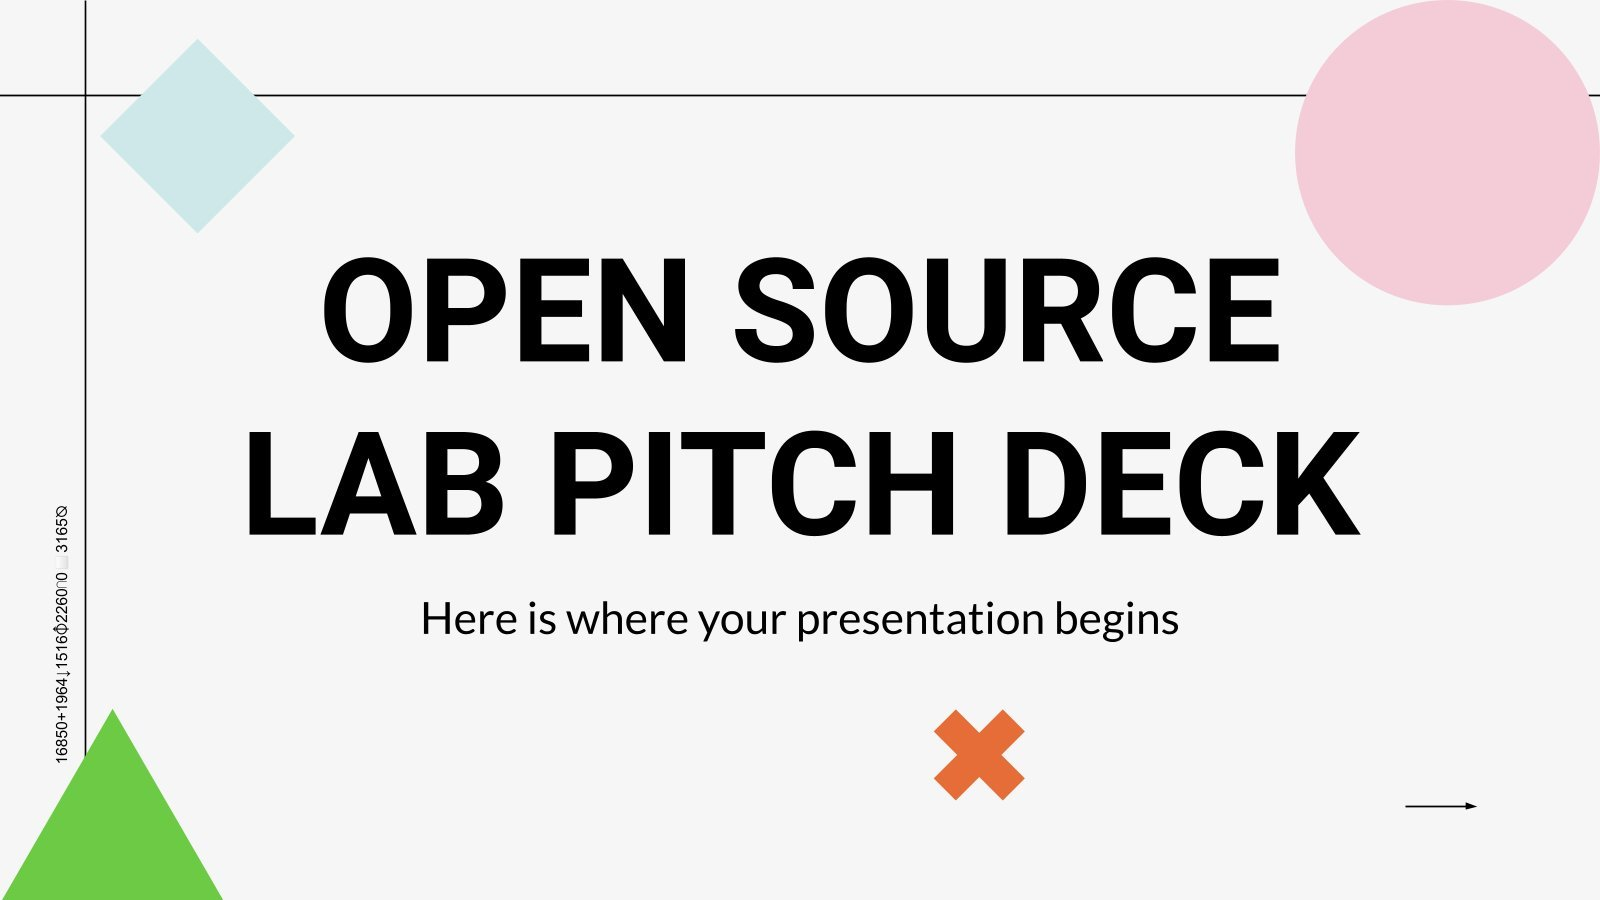 Open Source Lab Pitch Deck presentation template